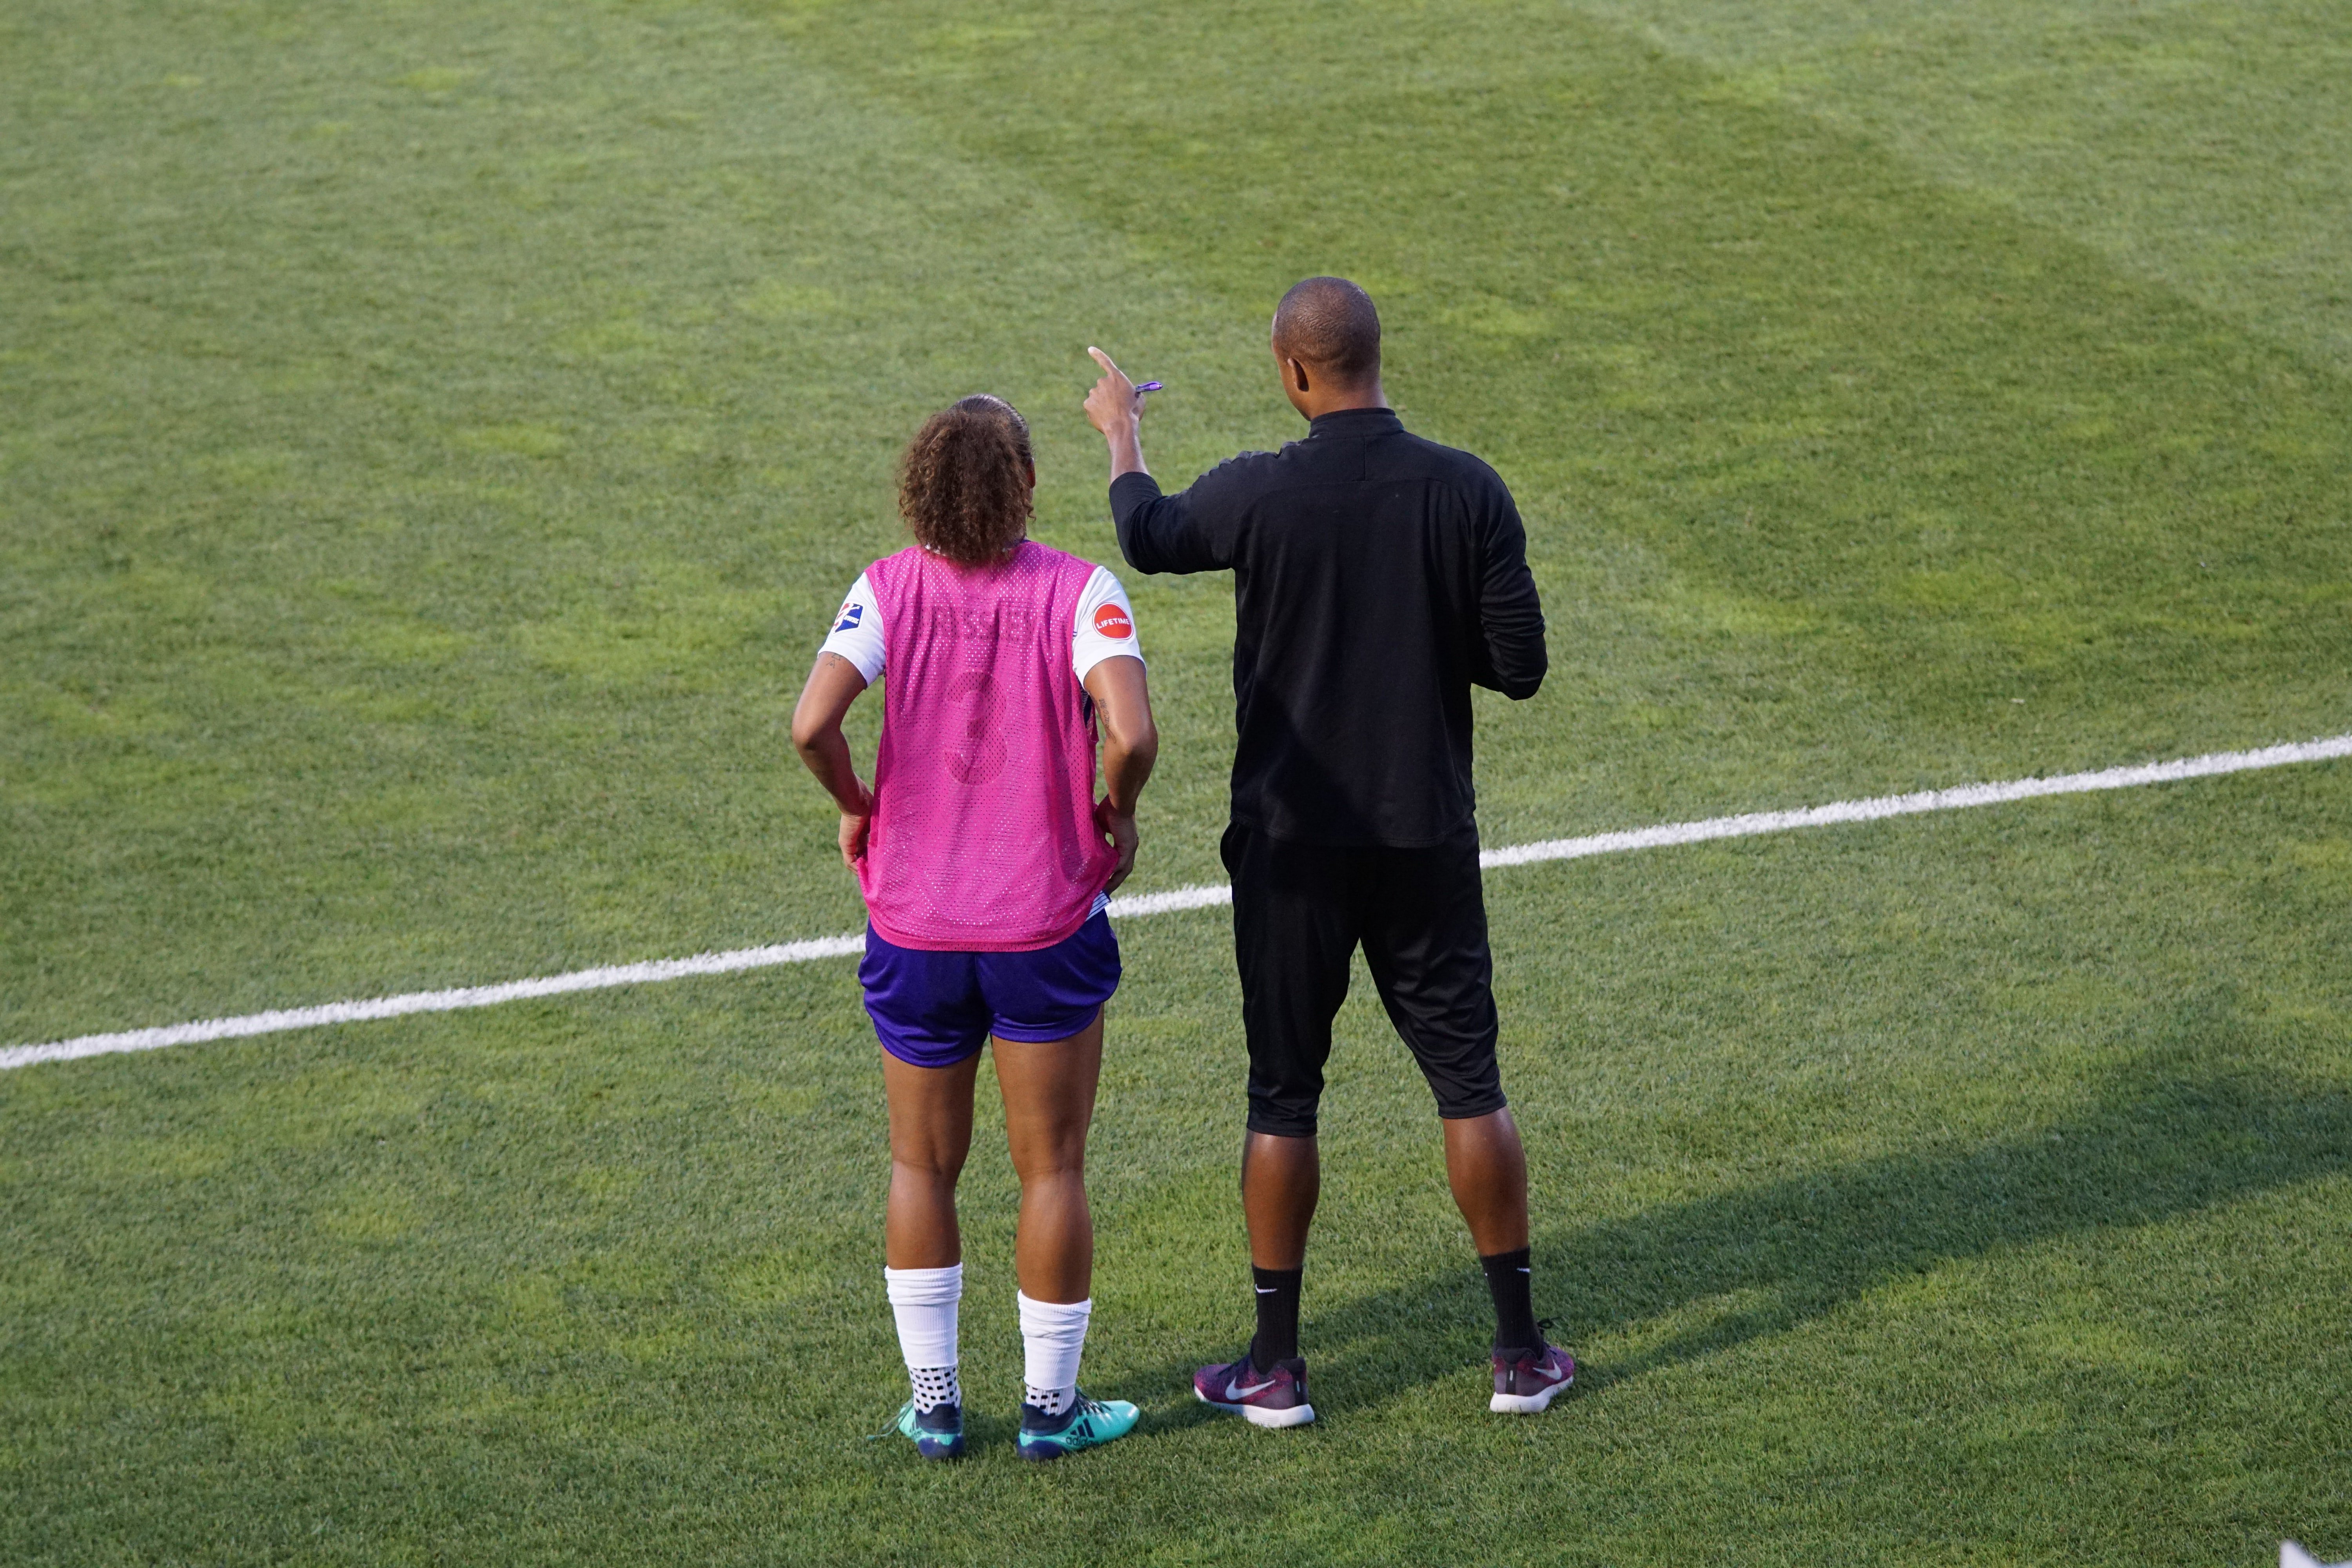 Coach on the field with athlete